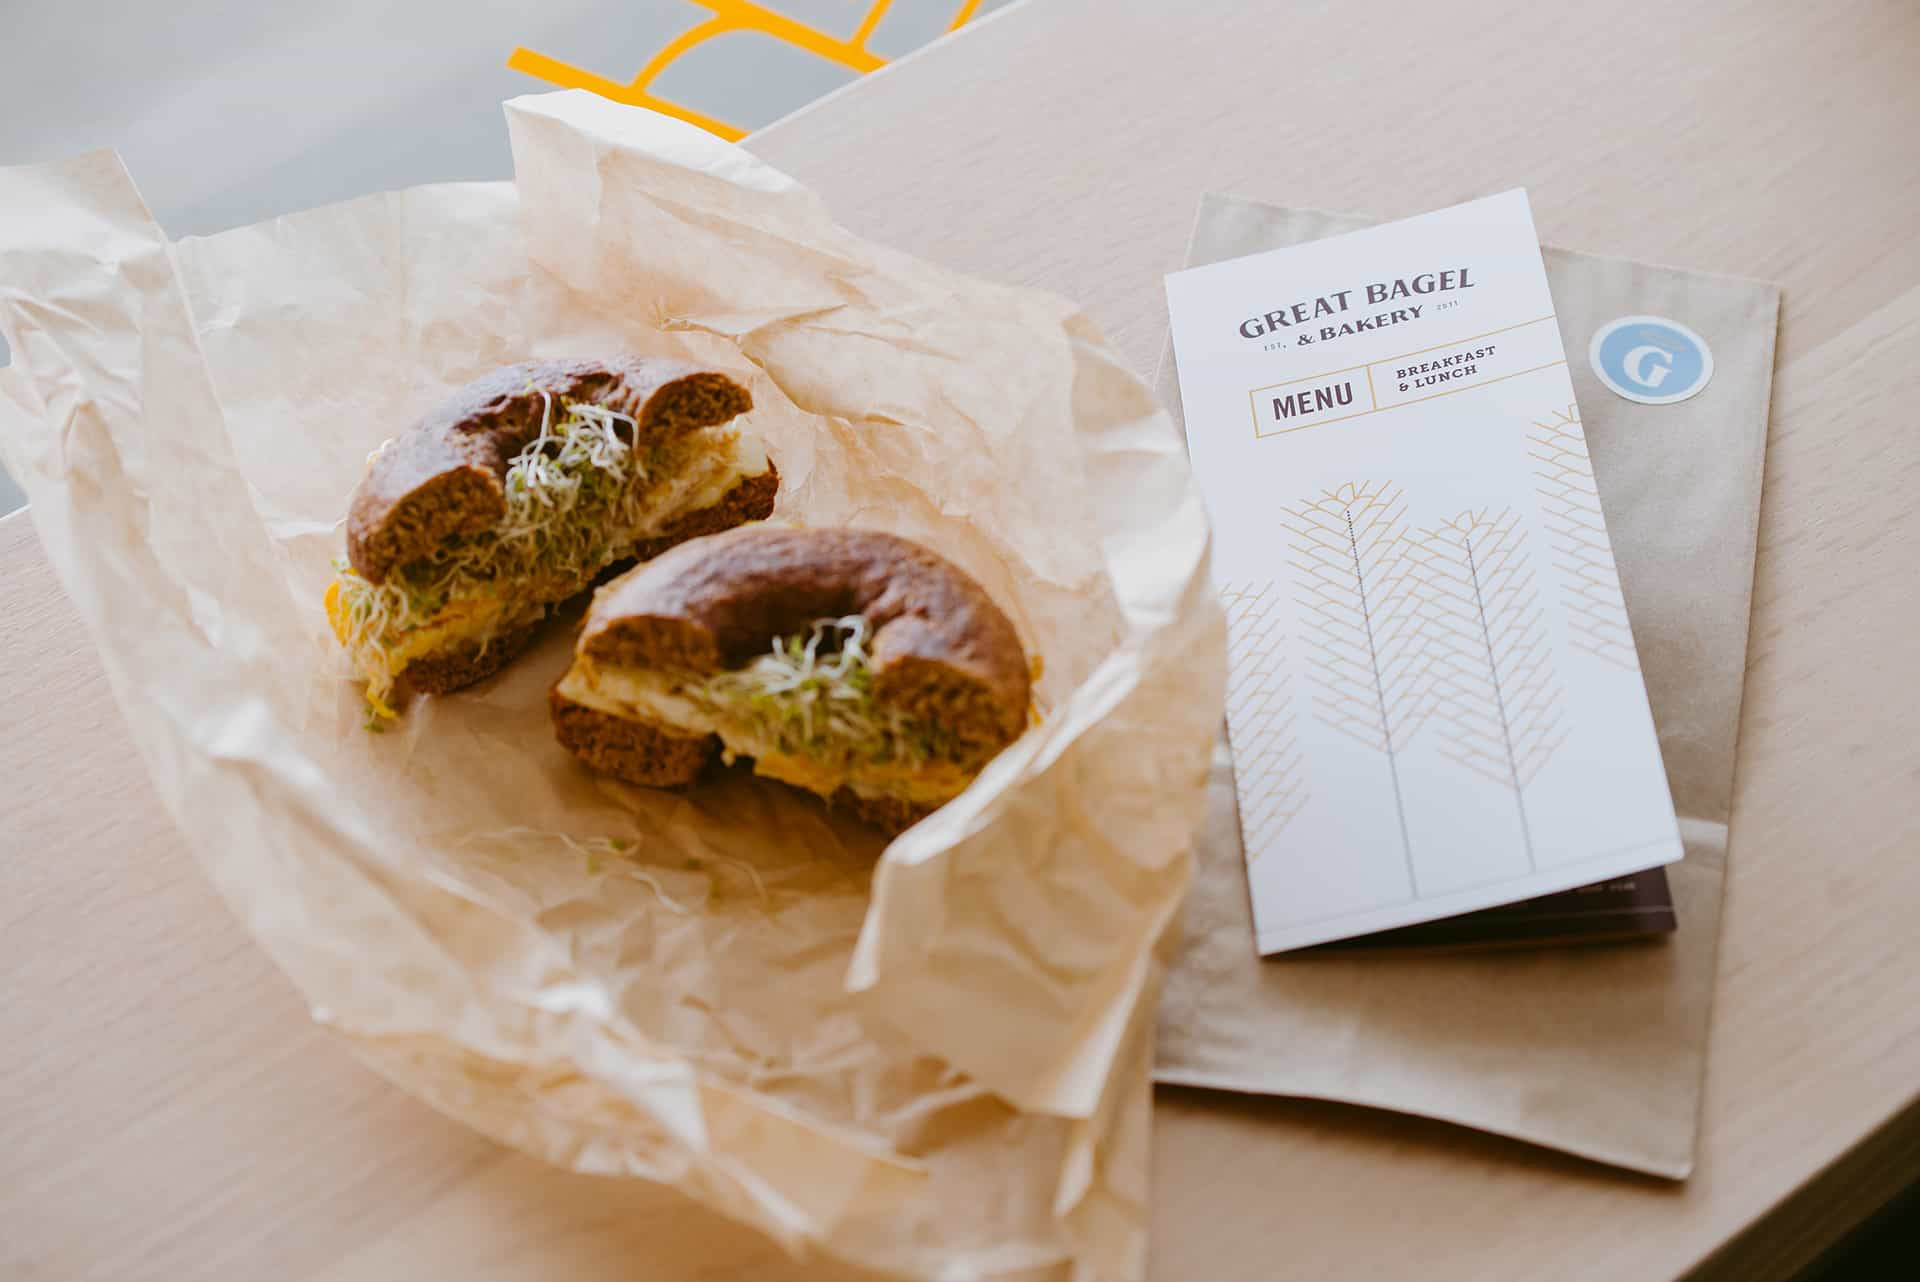 Great Bagel - restaurant branding menu design